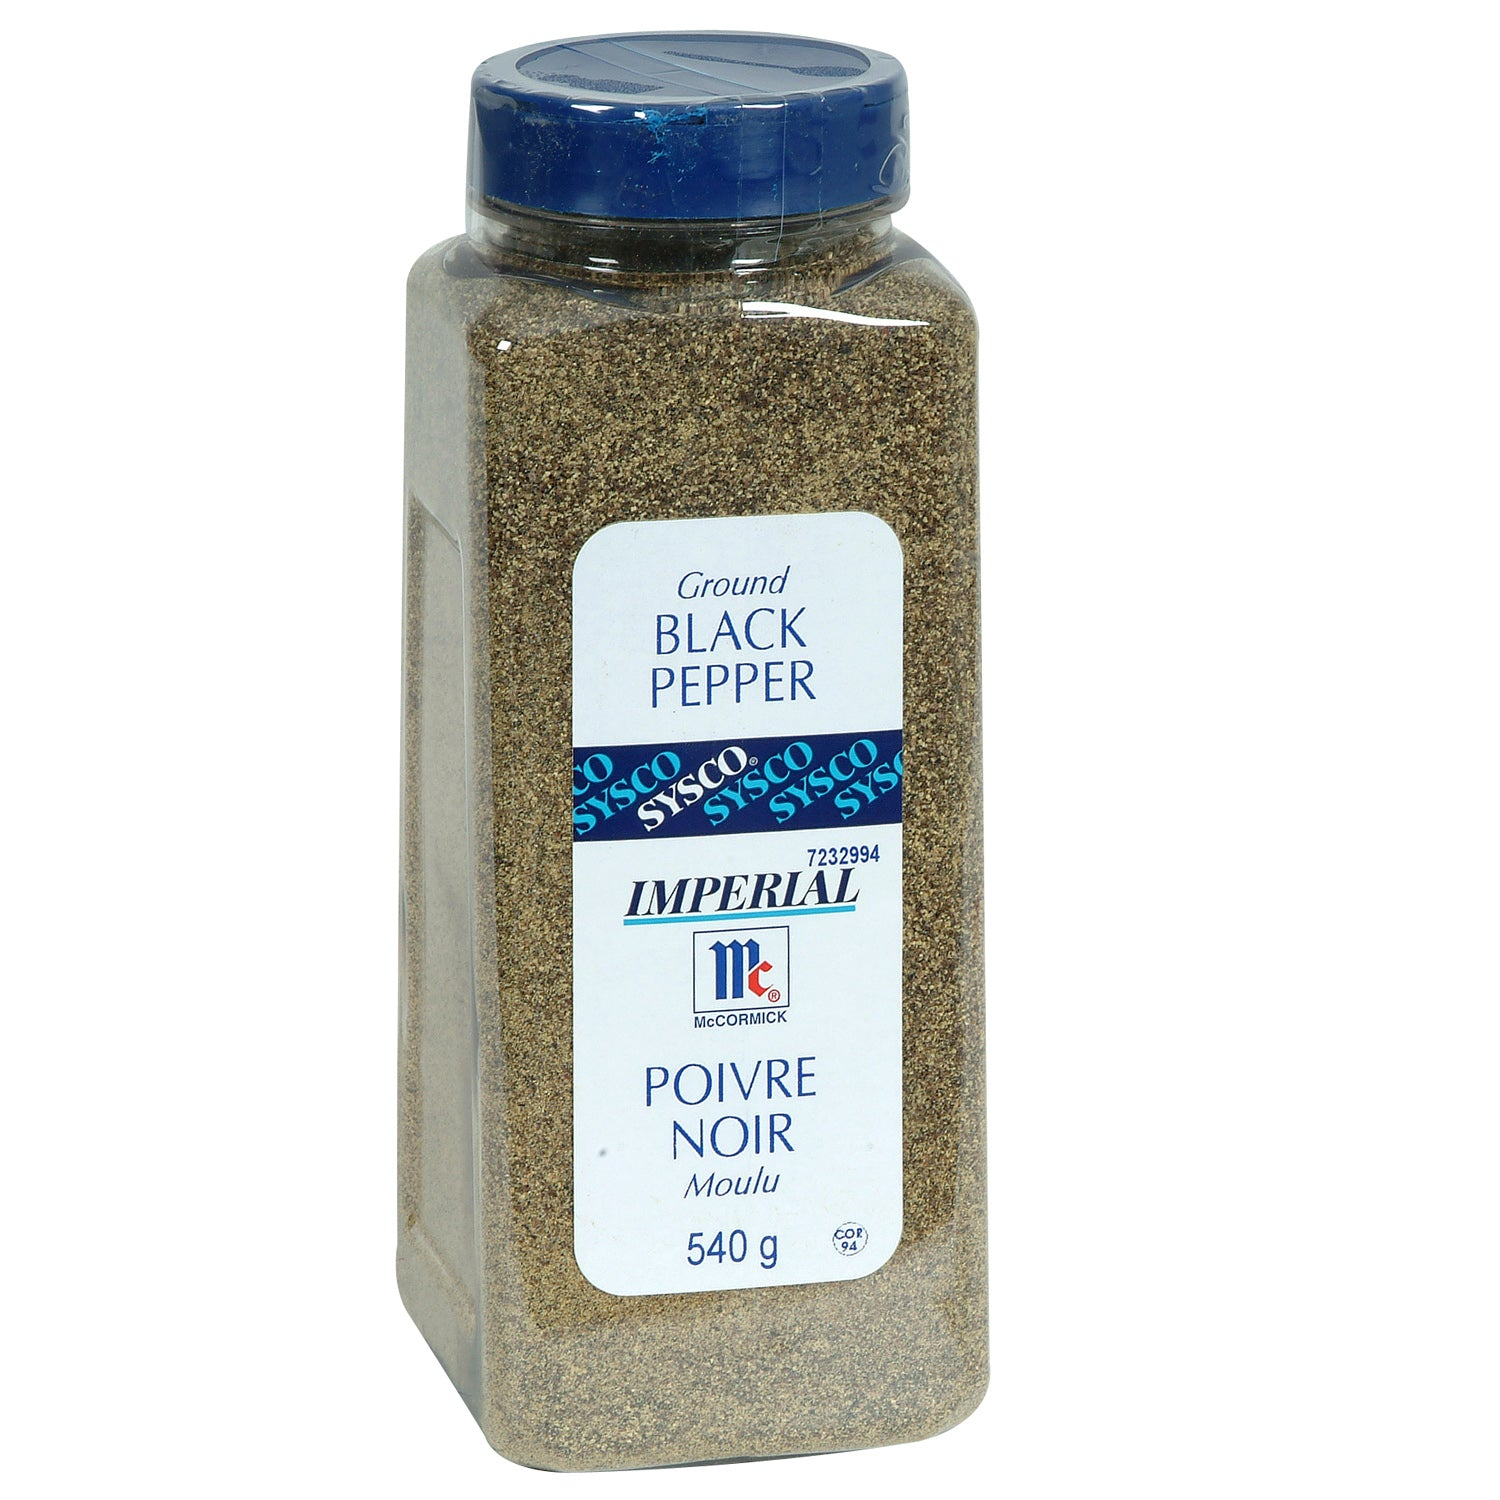 Sysco Imperial Ground Black Pepper 540 g - 1 Pack [$25.99/each]